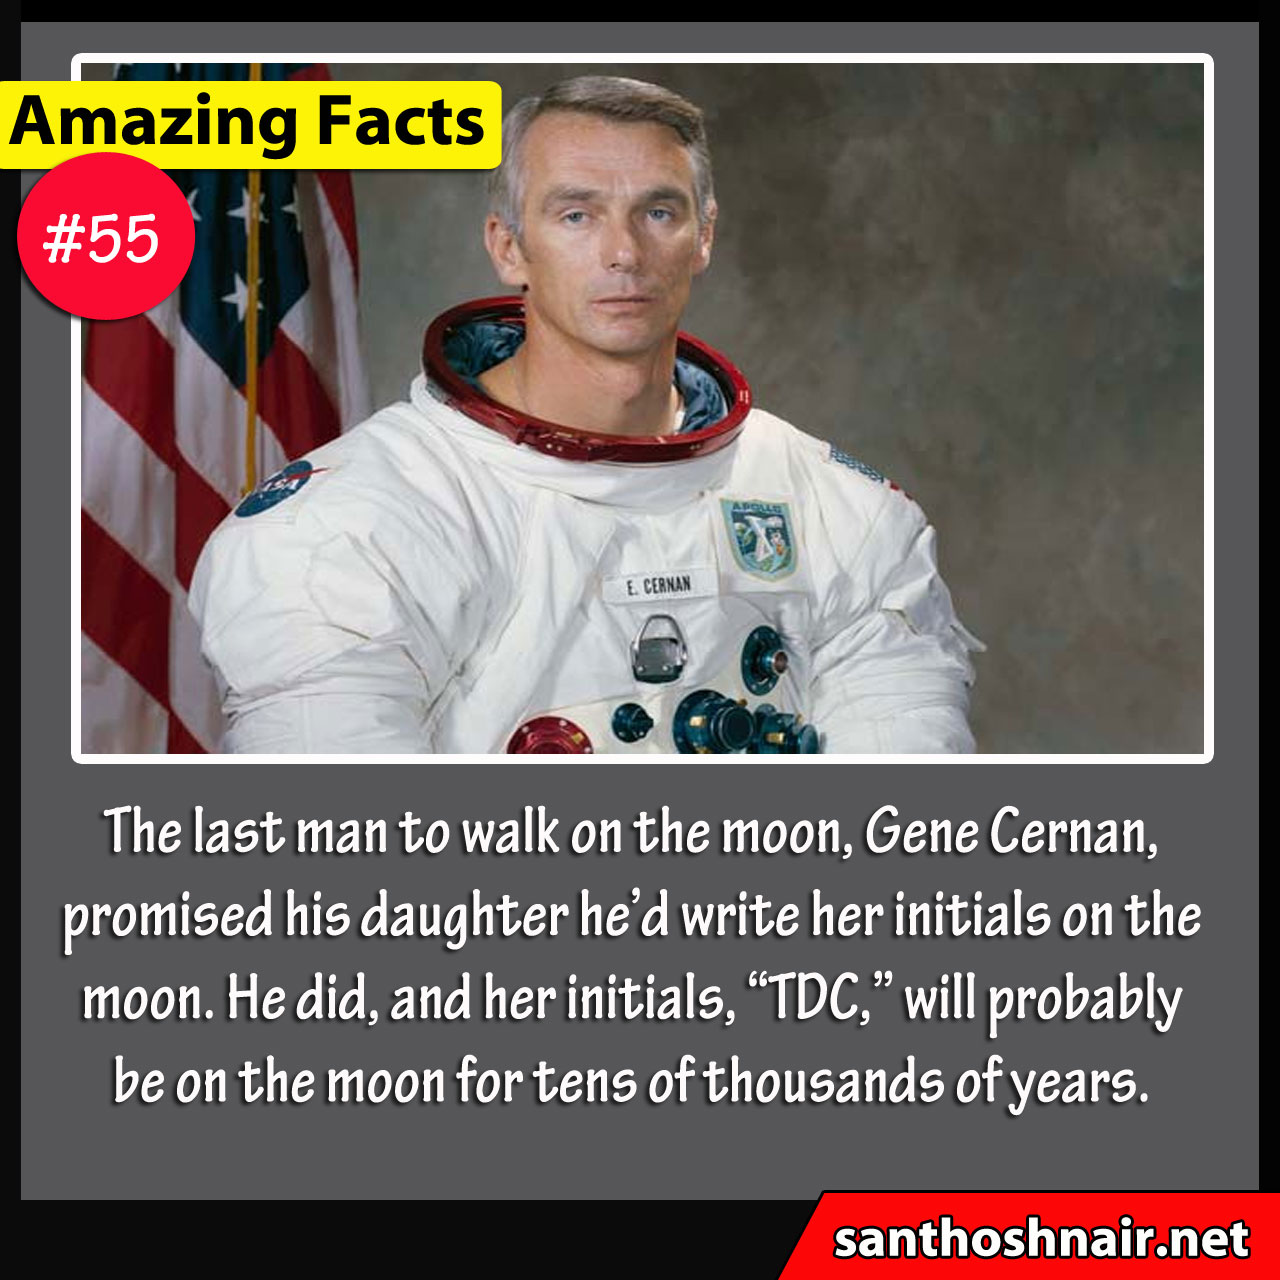 Amazing Facts #55 - Initials on the Moon